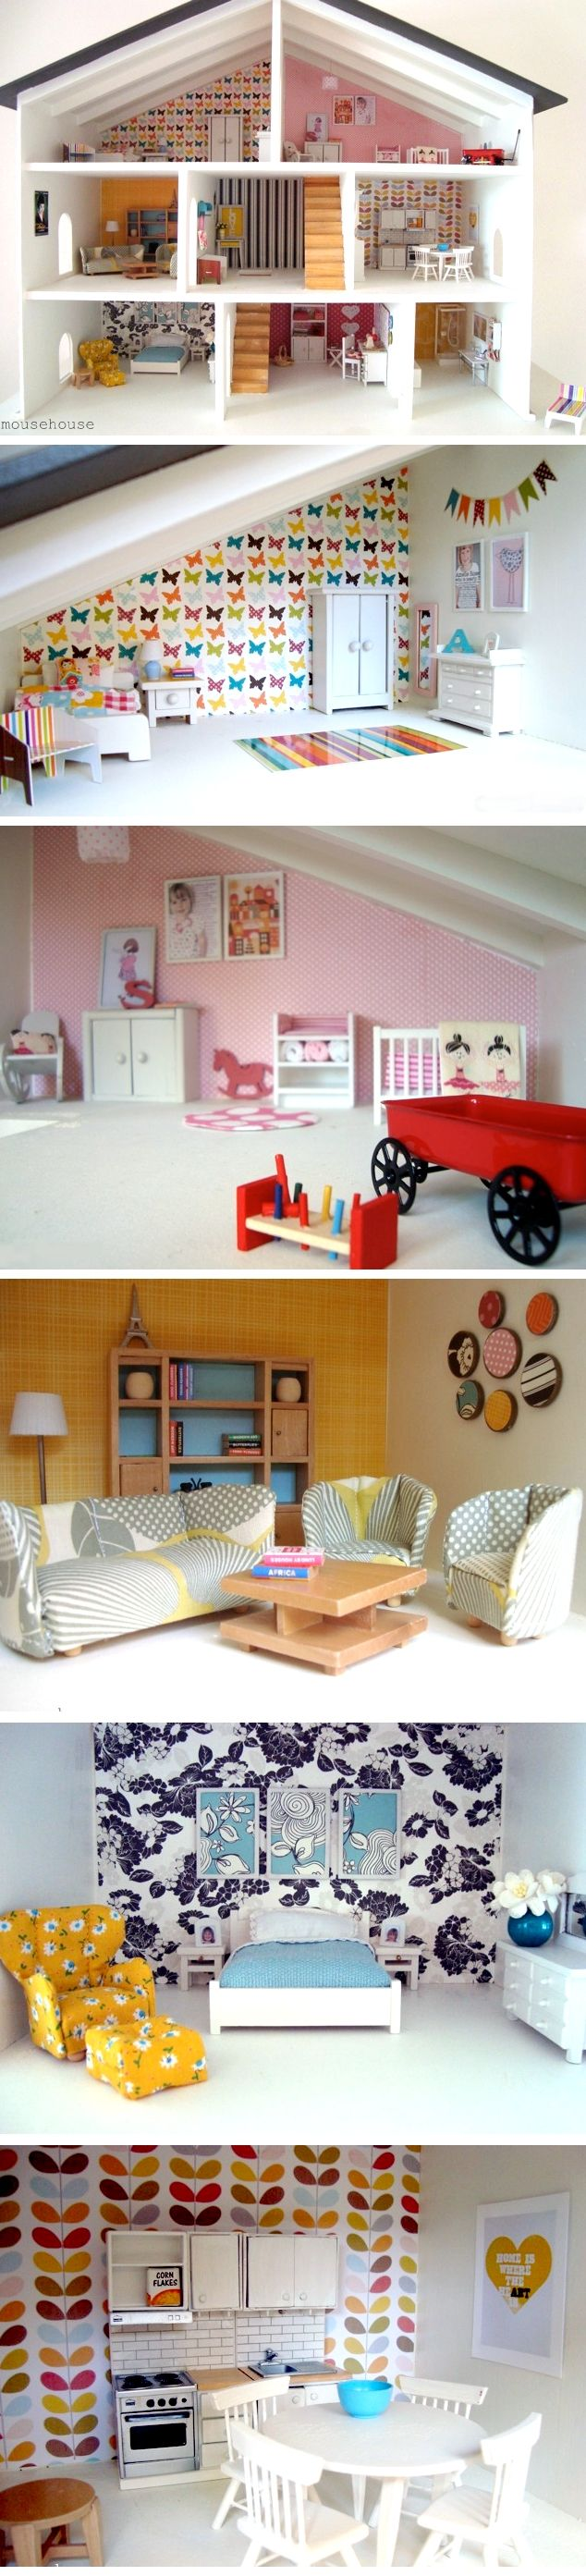 doll house dreaming